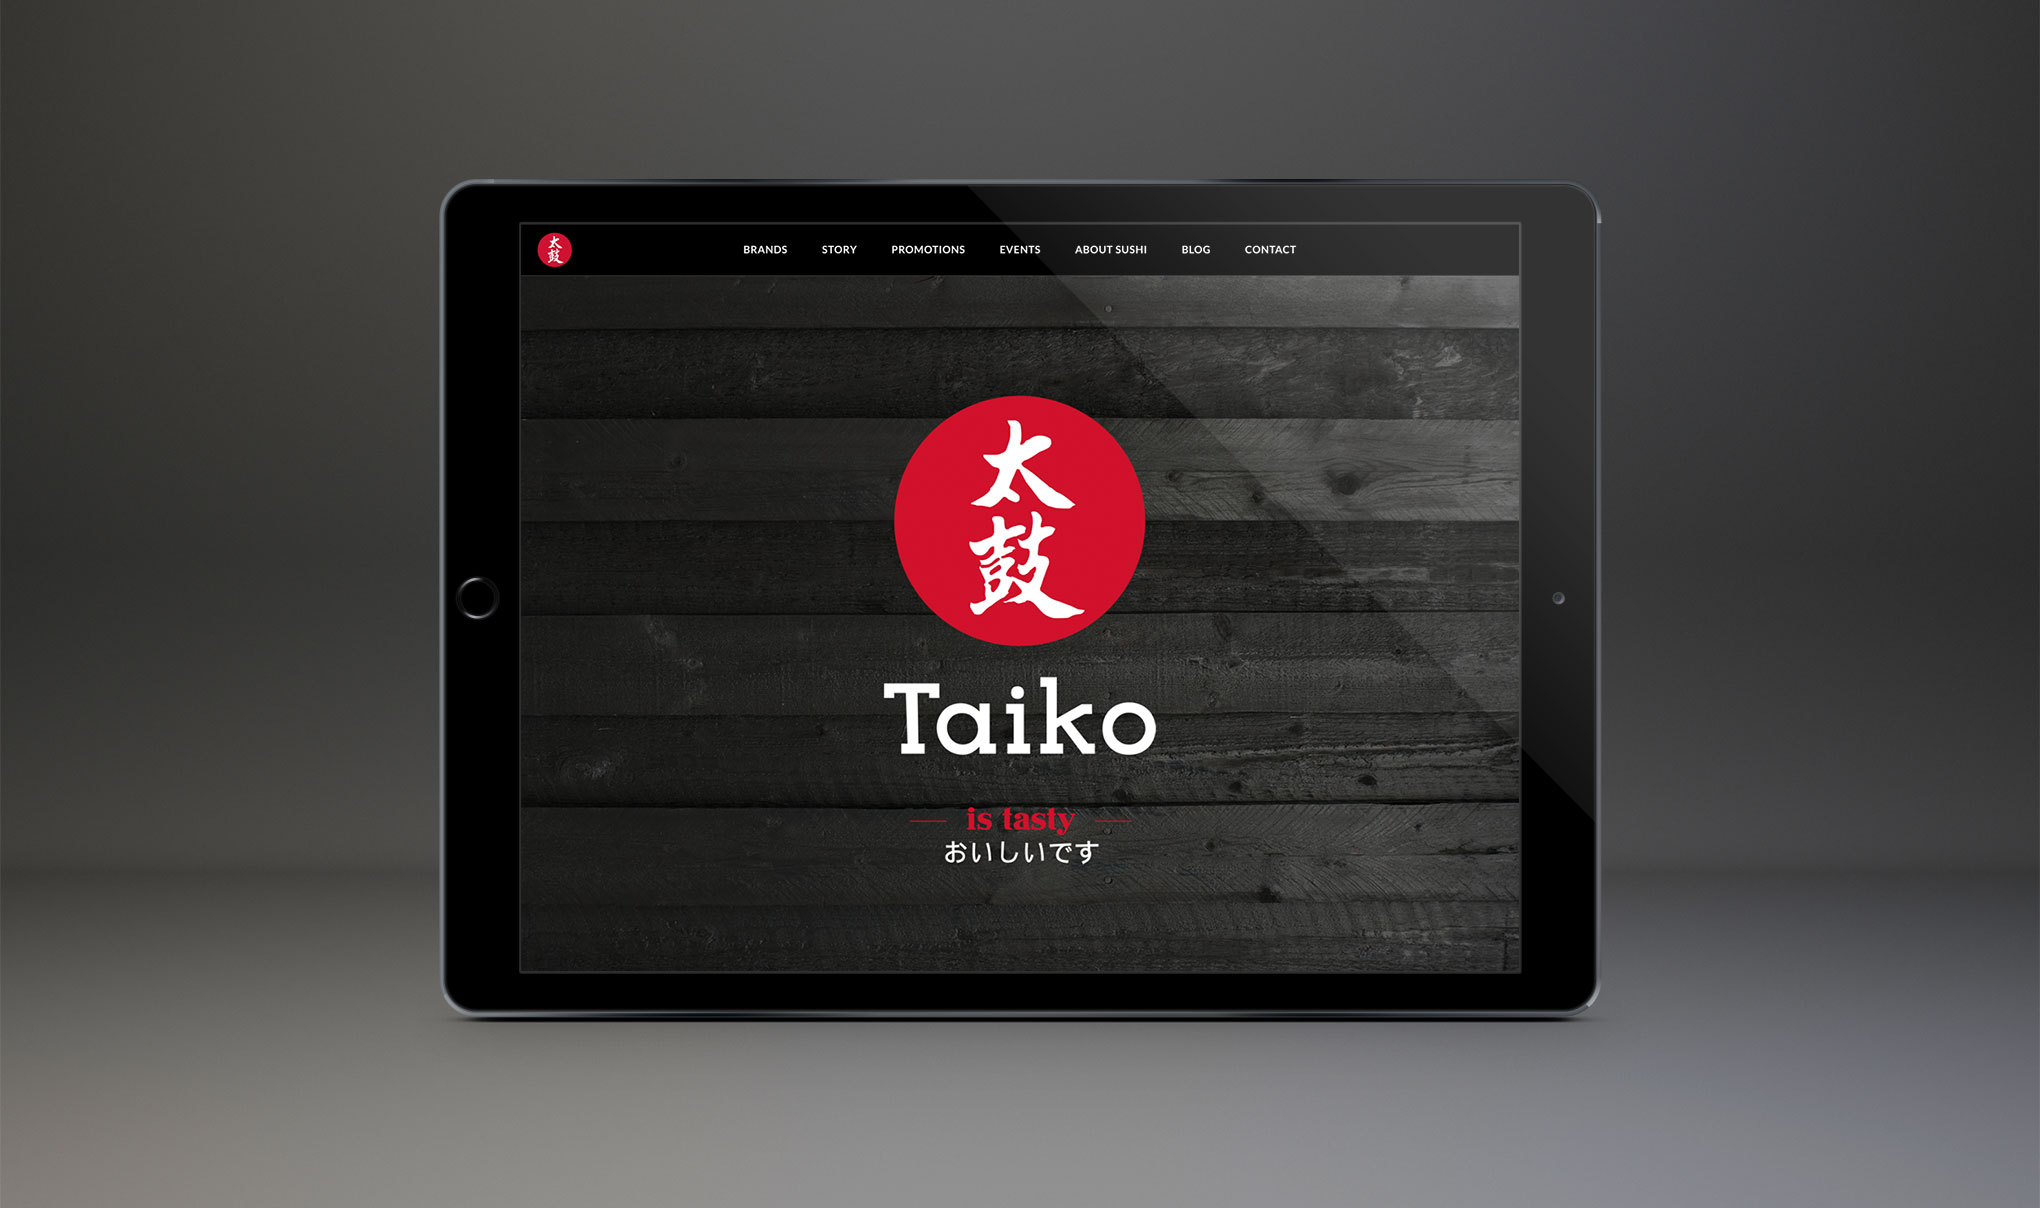 Website Design for Taiko Sushi. Image shows home page on an iPad. Created by web design agency - Flipflop Design, Brighton